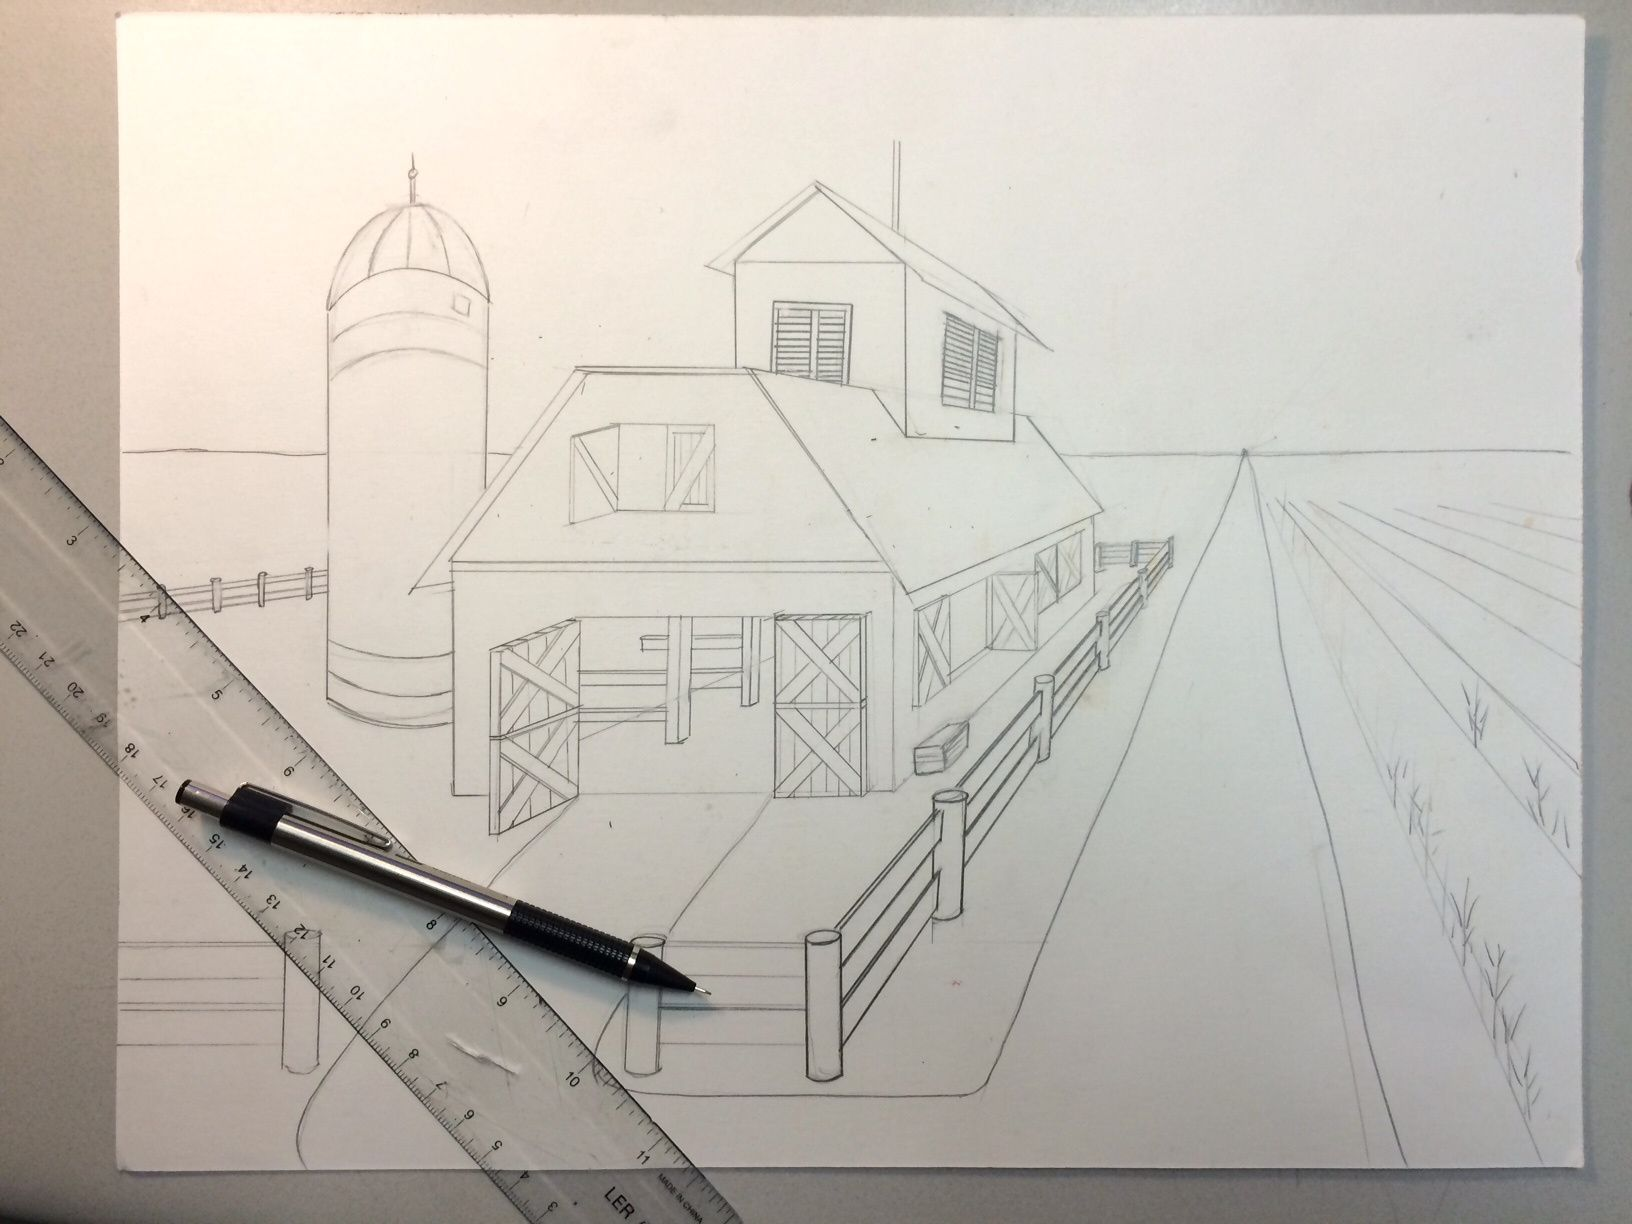 Dessin Immeuble En Perspective One Point Perspective Barn Watercolor Painting Lesson